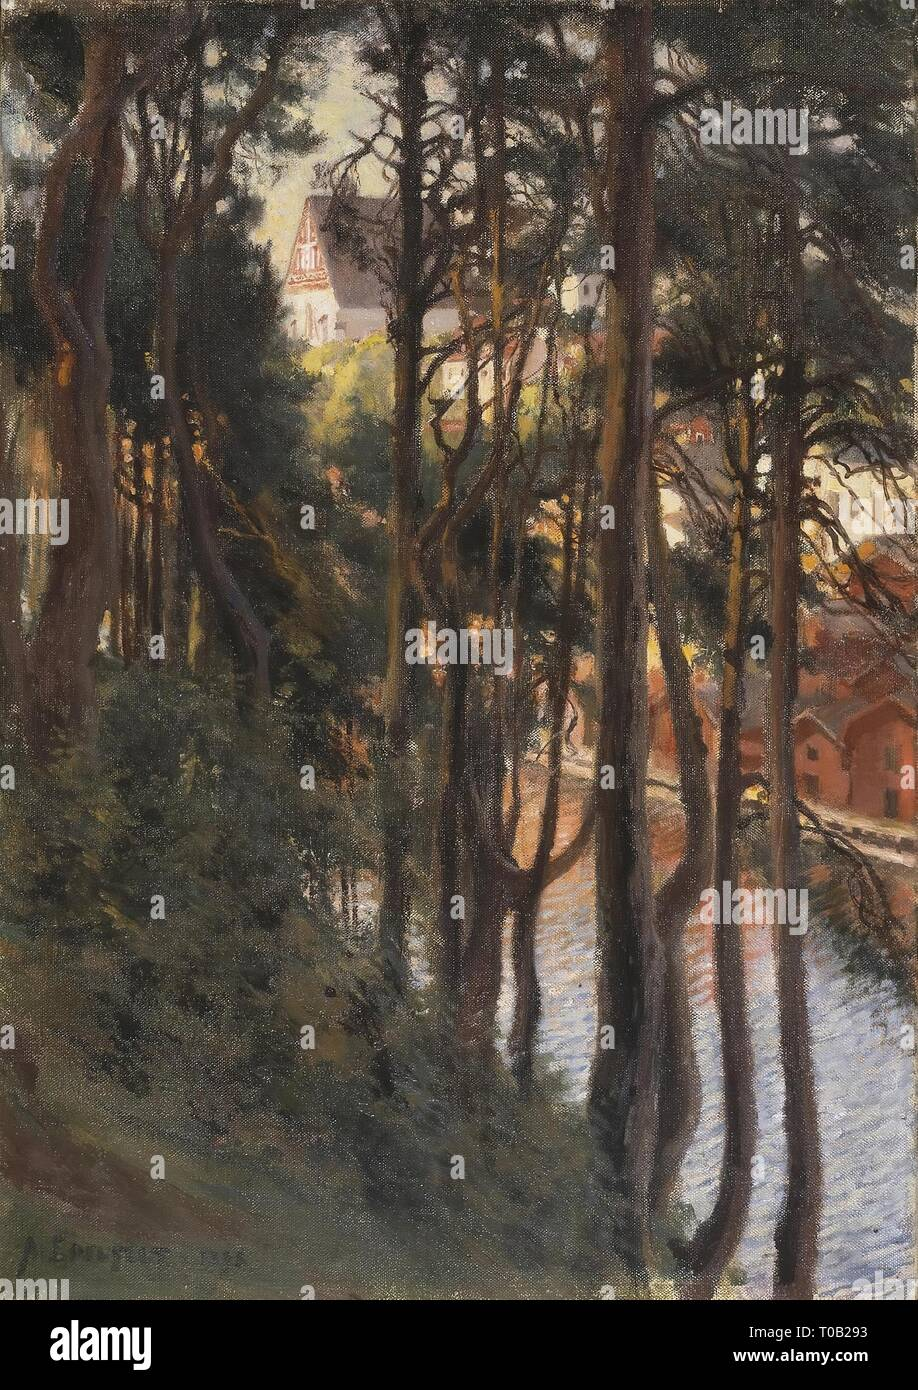 'View of Porvoo from Nasinmaki'. Finland, 1898. Dimensions: 64x45 cm. Museum: State Hermitage, St. Petersburg. Author: Albert Edelfelt (Gustaf Aristides). Stock Photo